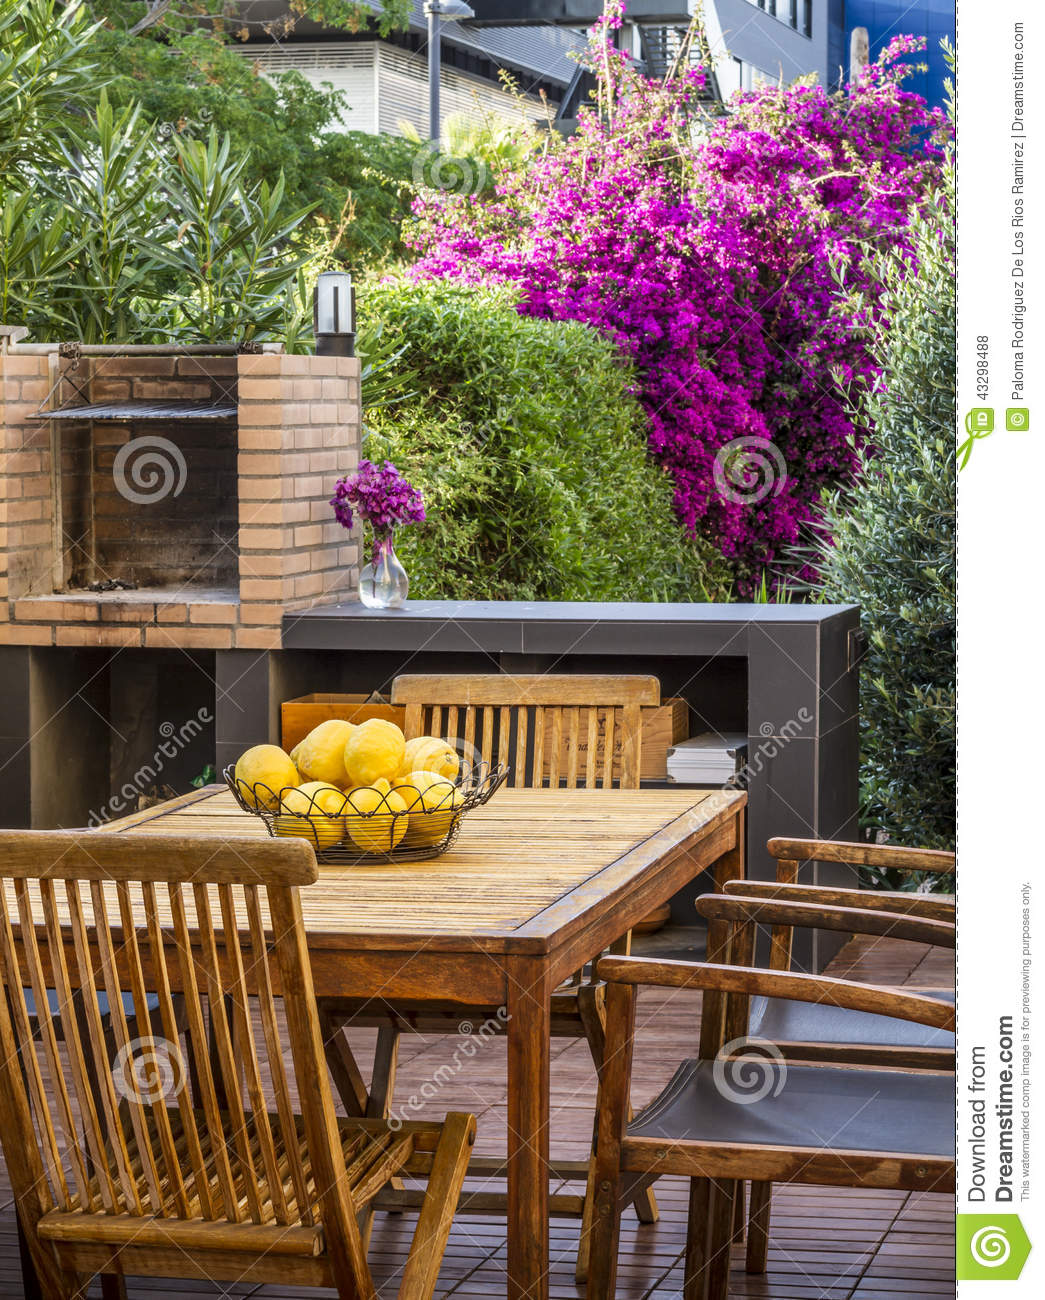 barbecue sur terrasse comment amnager son balcon barbecue amenagement terrasse with barbecue. Black Bedroom Furniture Sets. Home Design Ideas